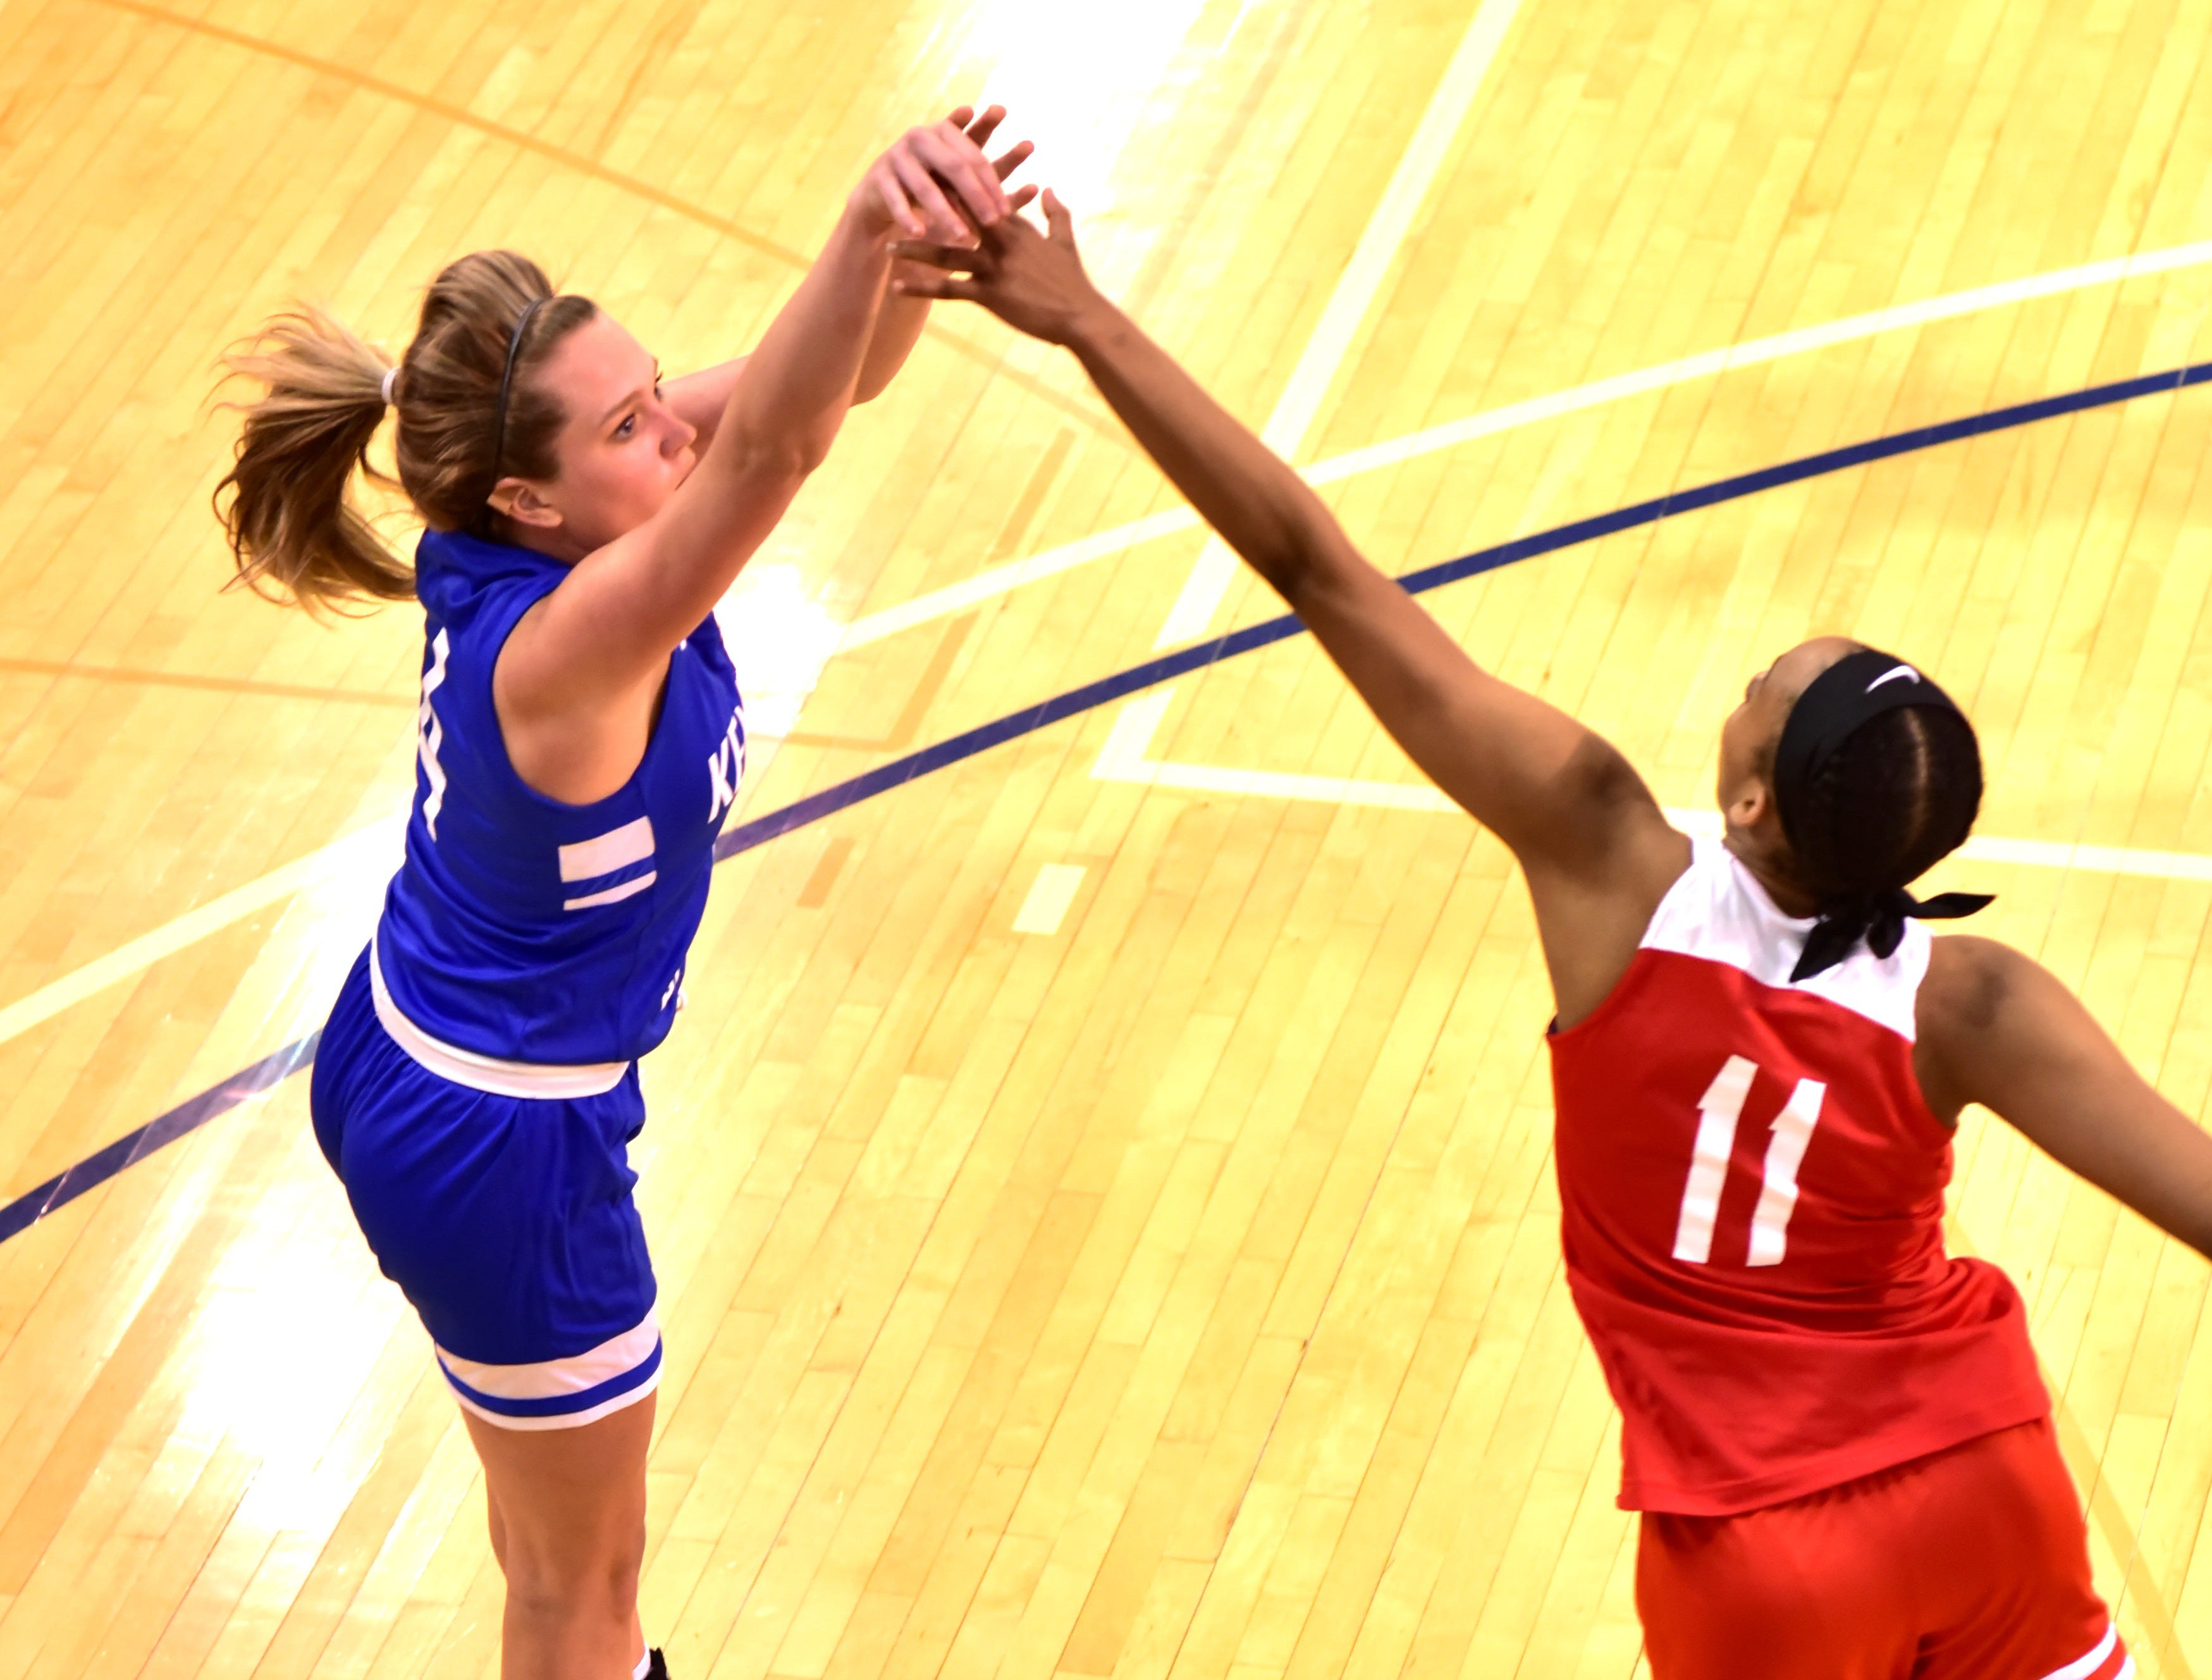 Conner's Courtney Hurst lifts a jump shot for a Kentucky girls team basket over the defense of Dominique Camp of Lakota West at the 28th Annual Ohio-Kentucky All Star Games played at Thomas More University, April 13, 2019